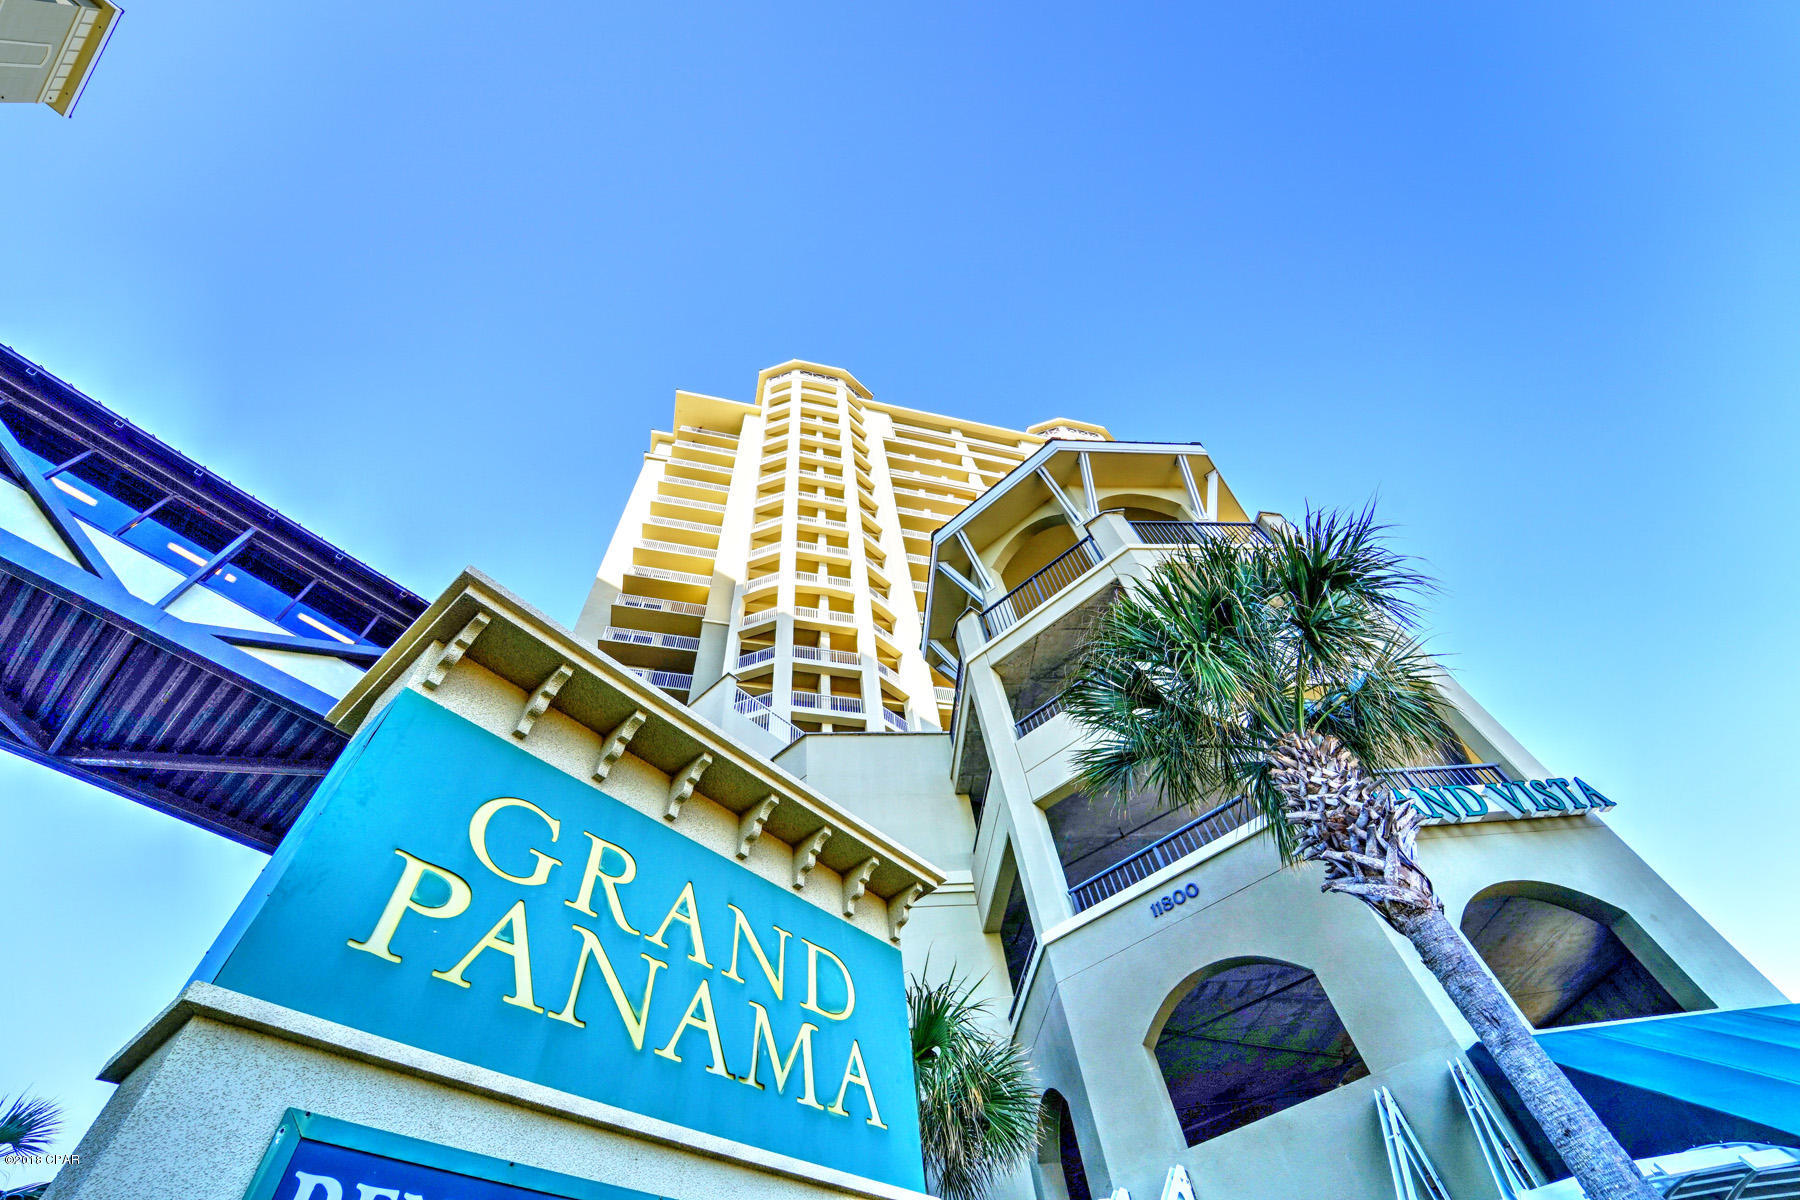 A 3 Bedroom 3 Bedroom Grand Panama Beach Resort Condominium